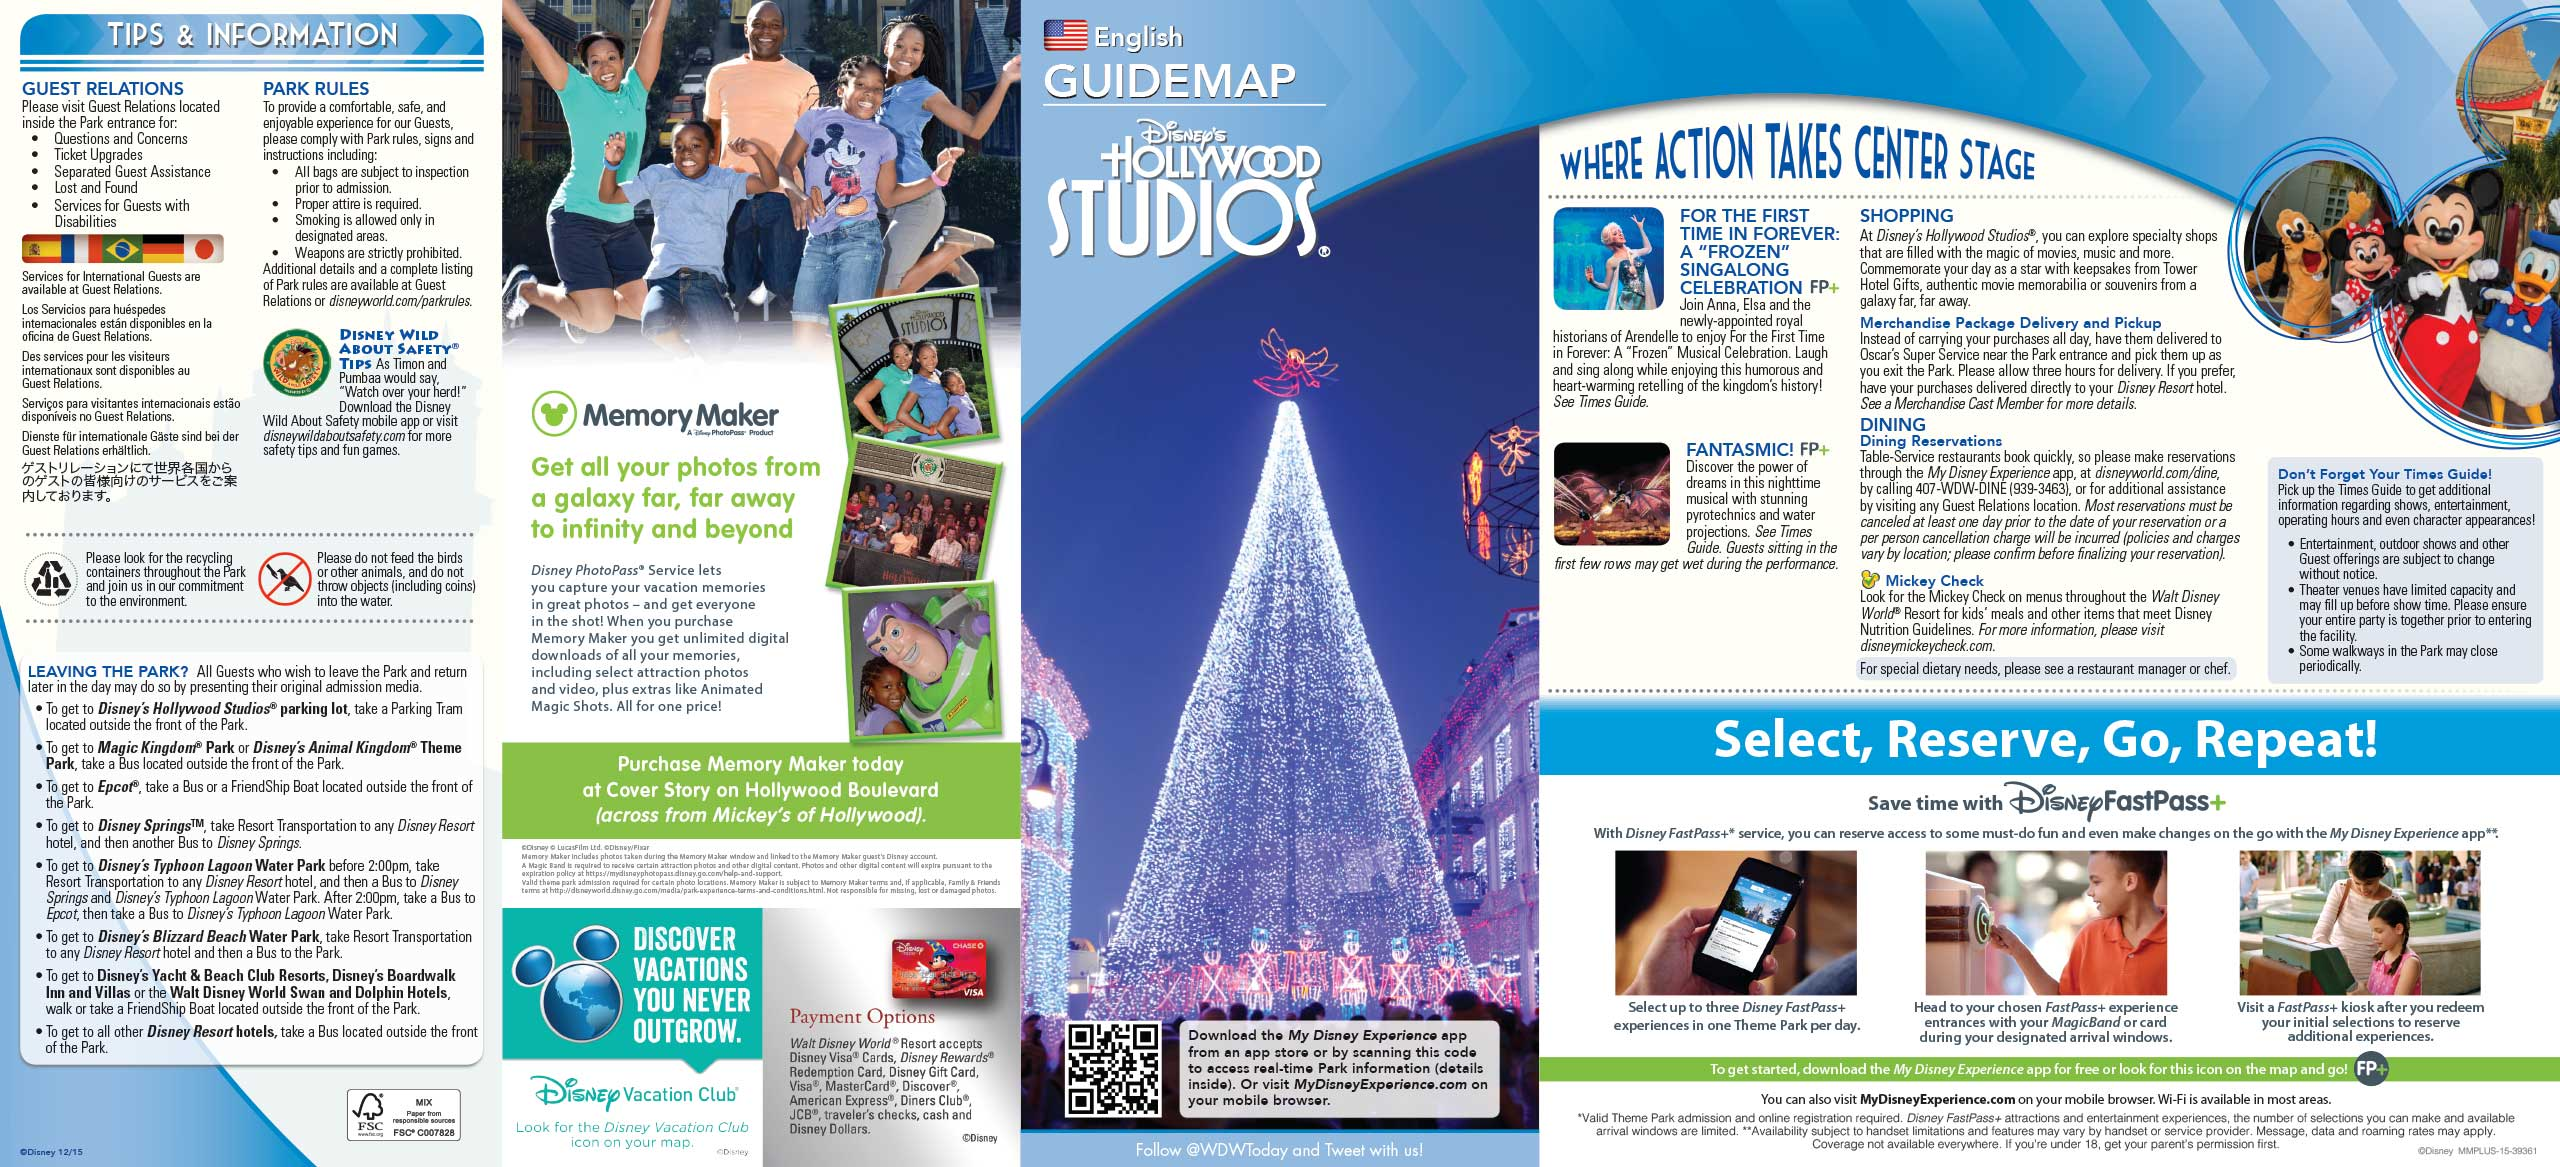 Disney's Hollywood Studios Guide Map December 2015 - Front